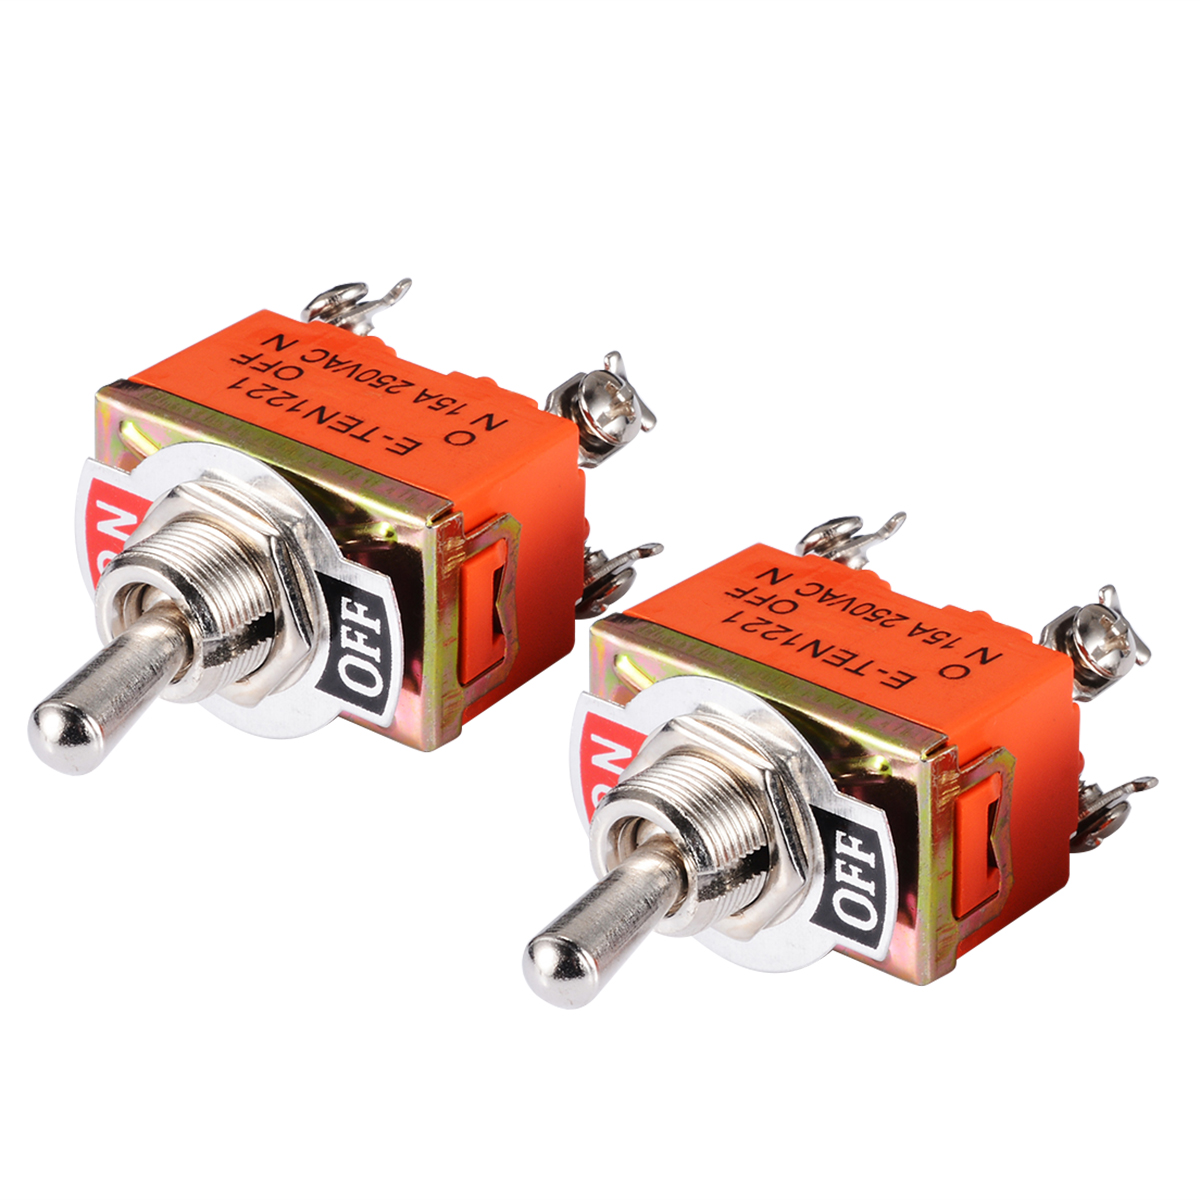 10x Heavy Duty 15A 250V 6-Pin ON-OFF-ON 3 Position Toggle Switch